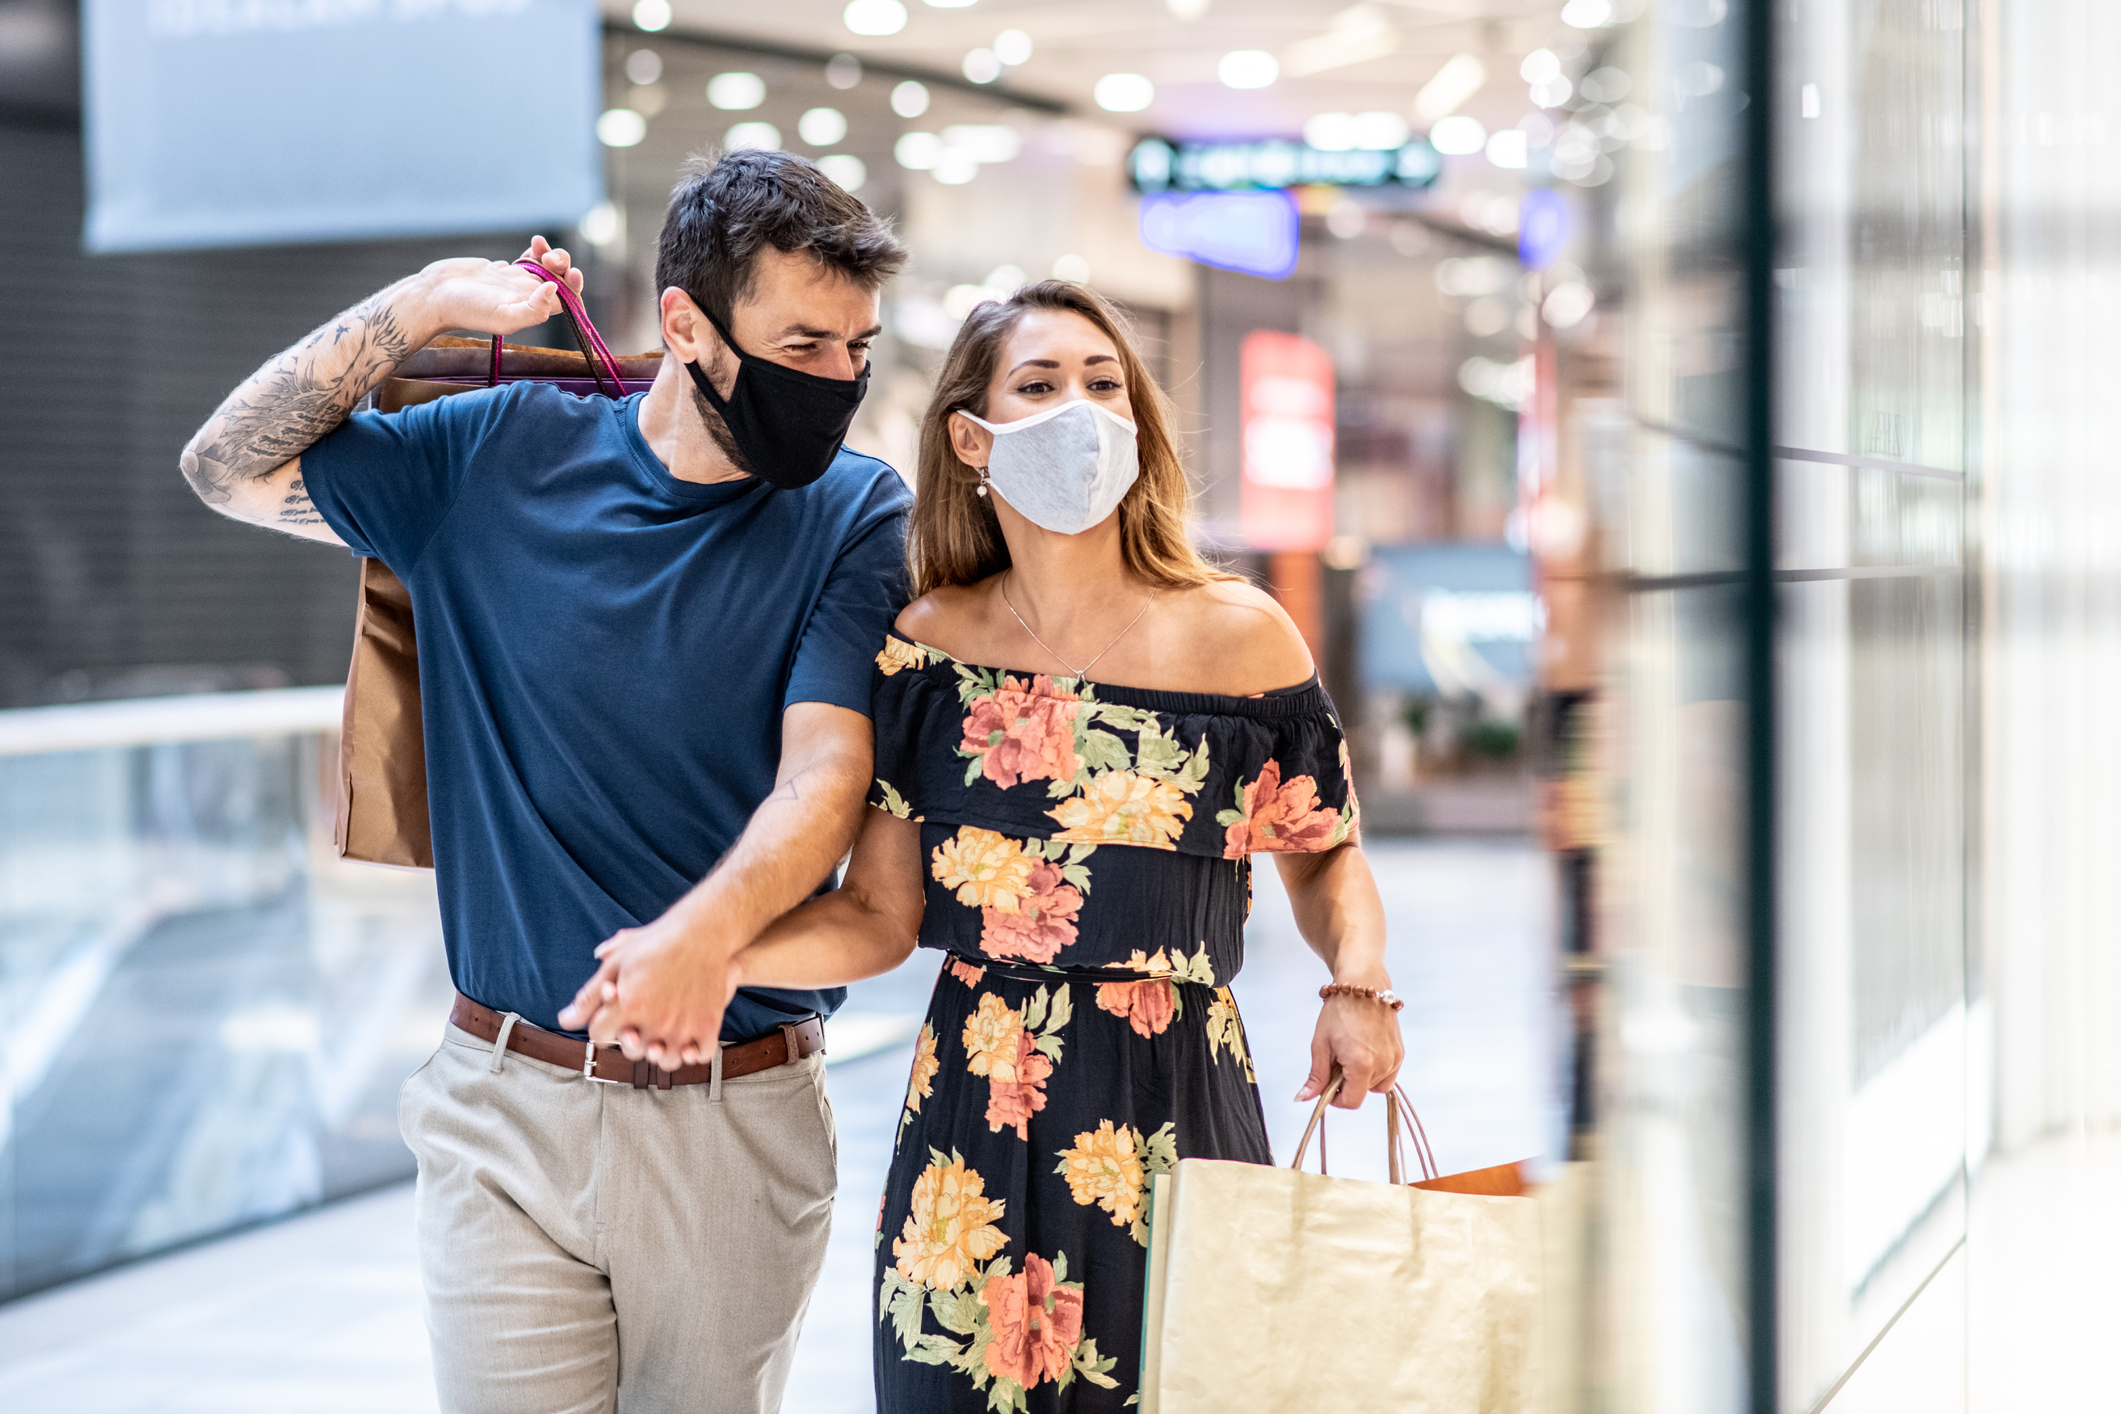 A Young Couple Is Carrying Shopping Bags With Masks On Their Faces And Walks, Shopping During A Pandemic